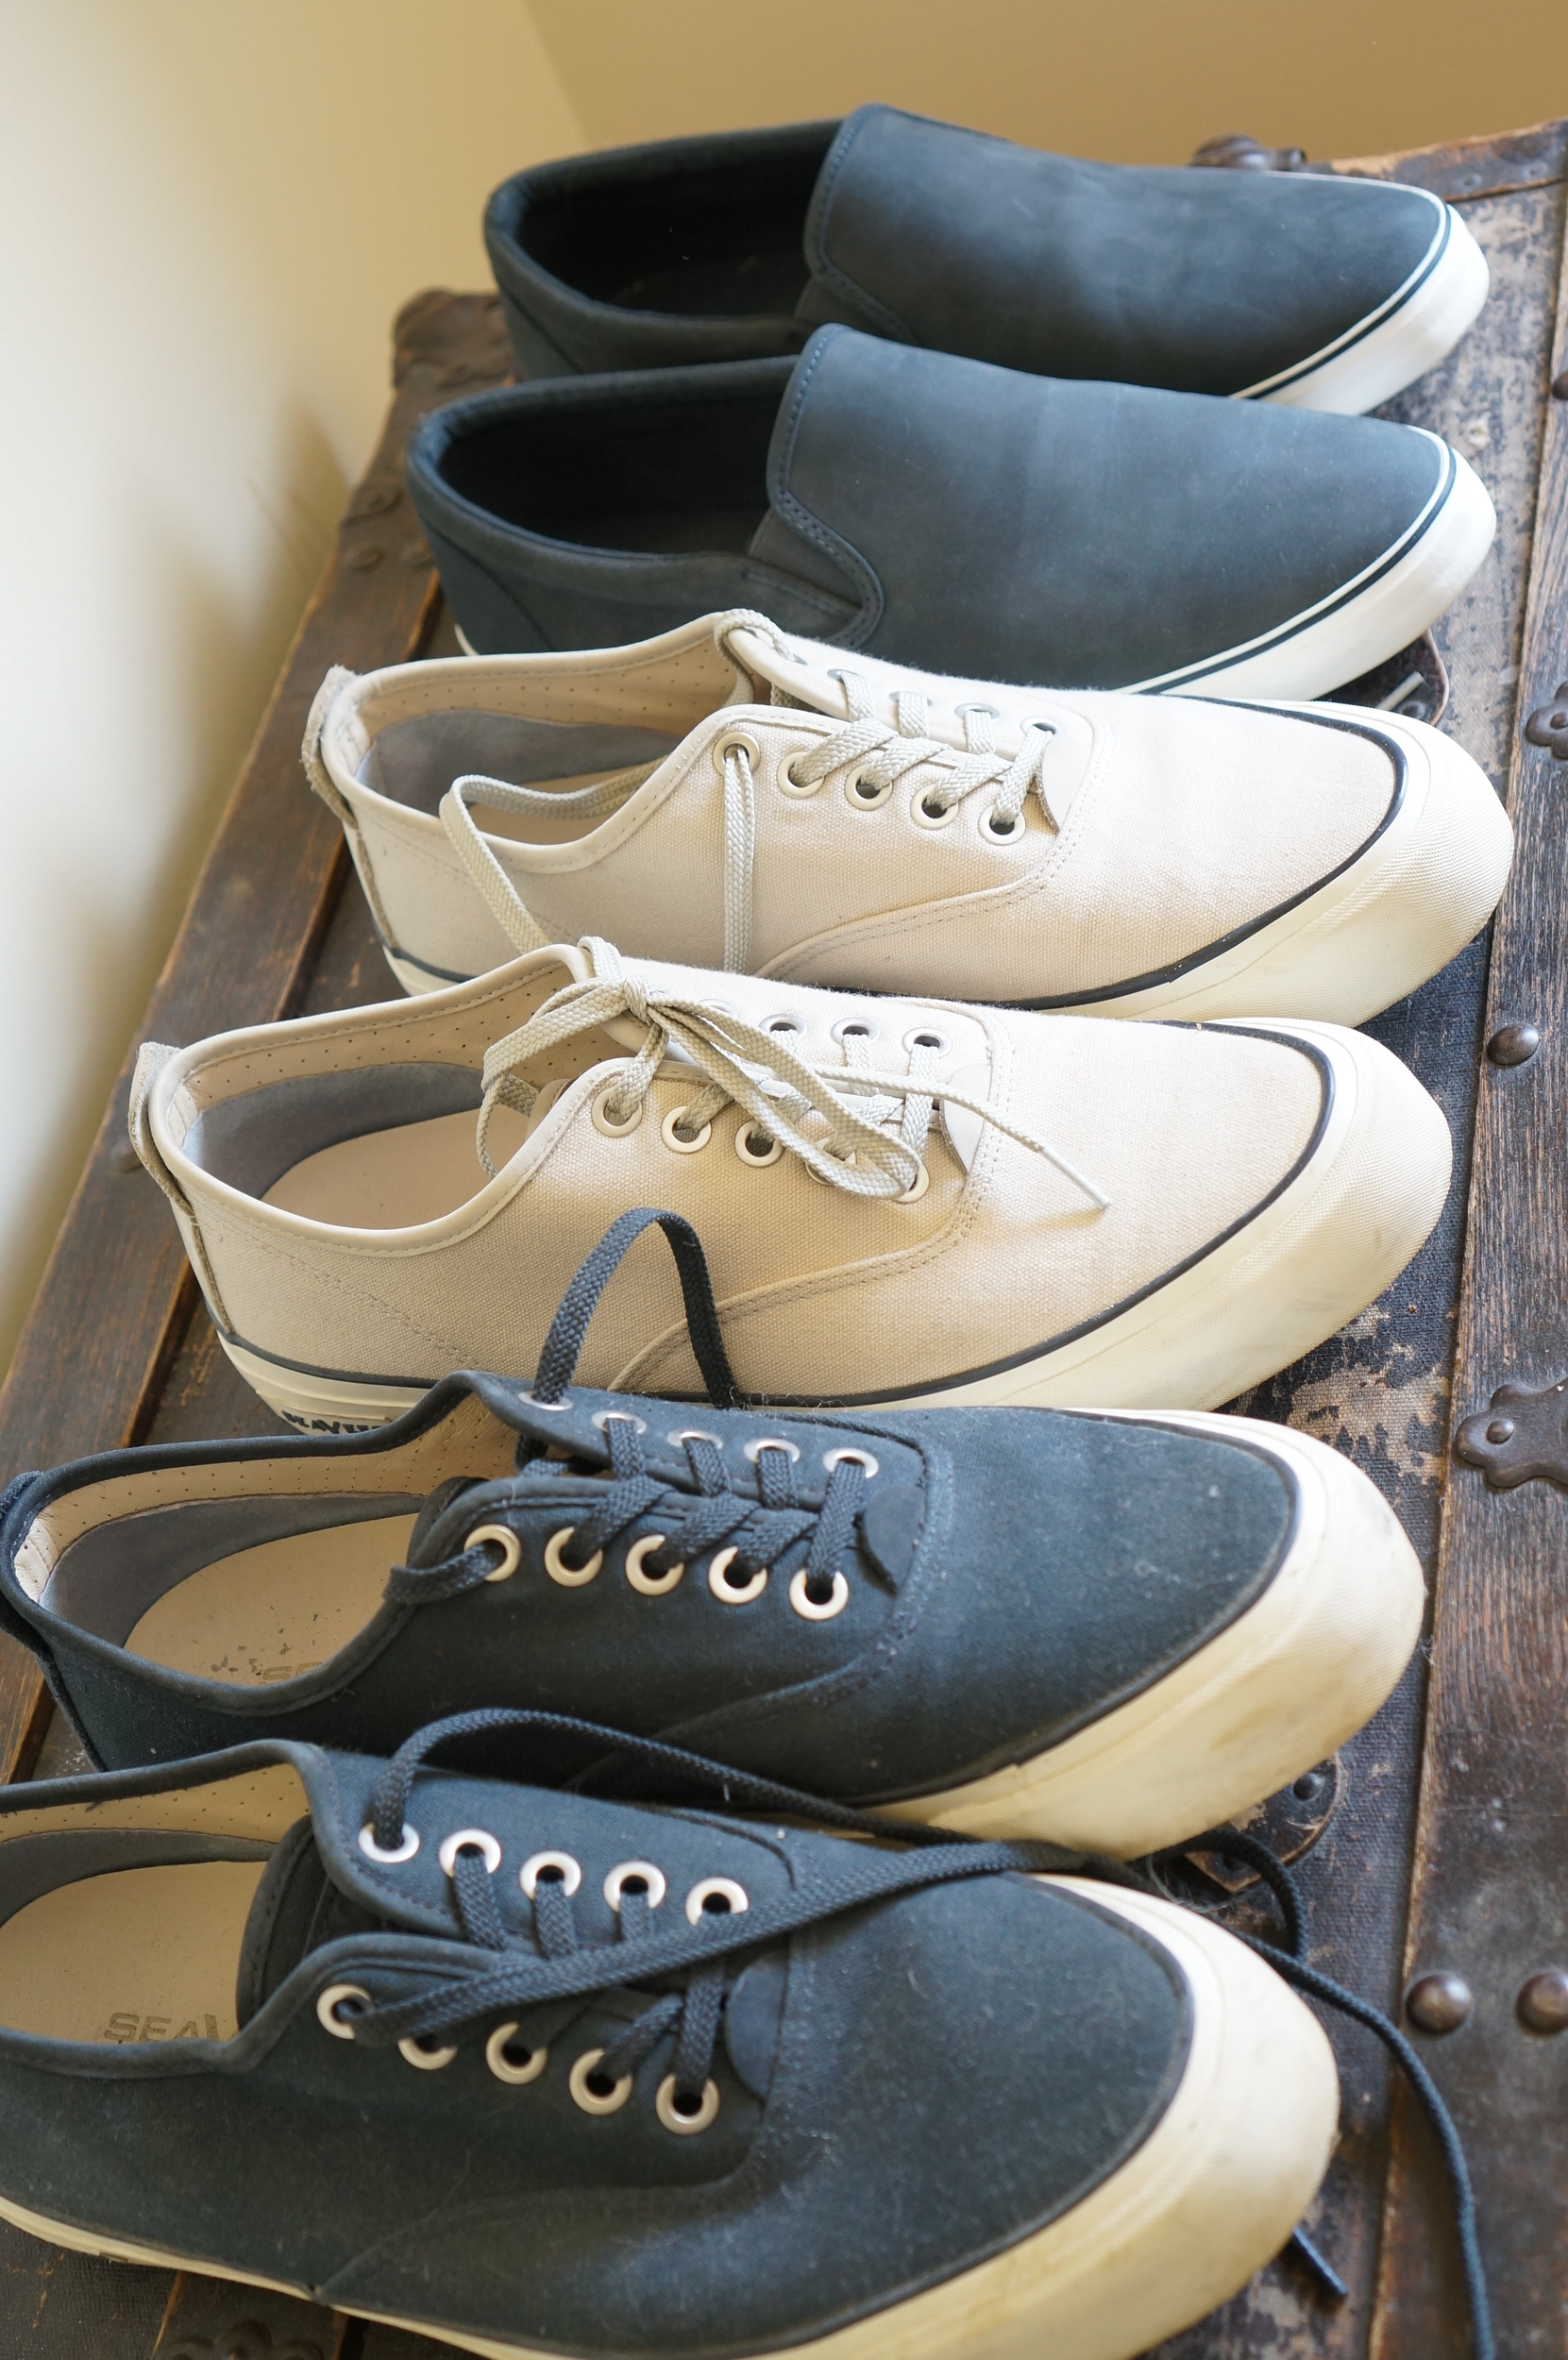 J Reviews The Best Men S Sneakers For Travel In Europe